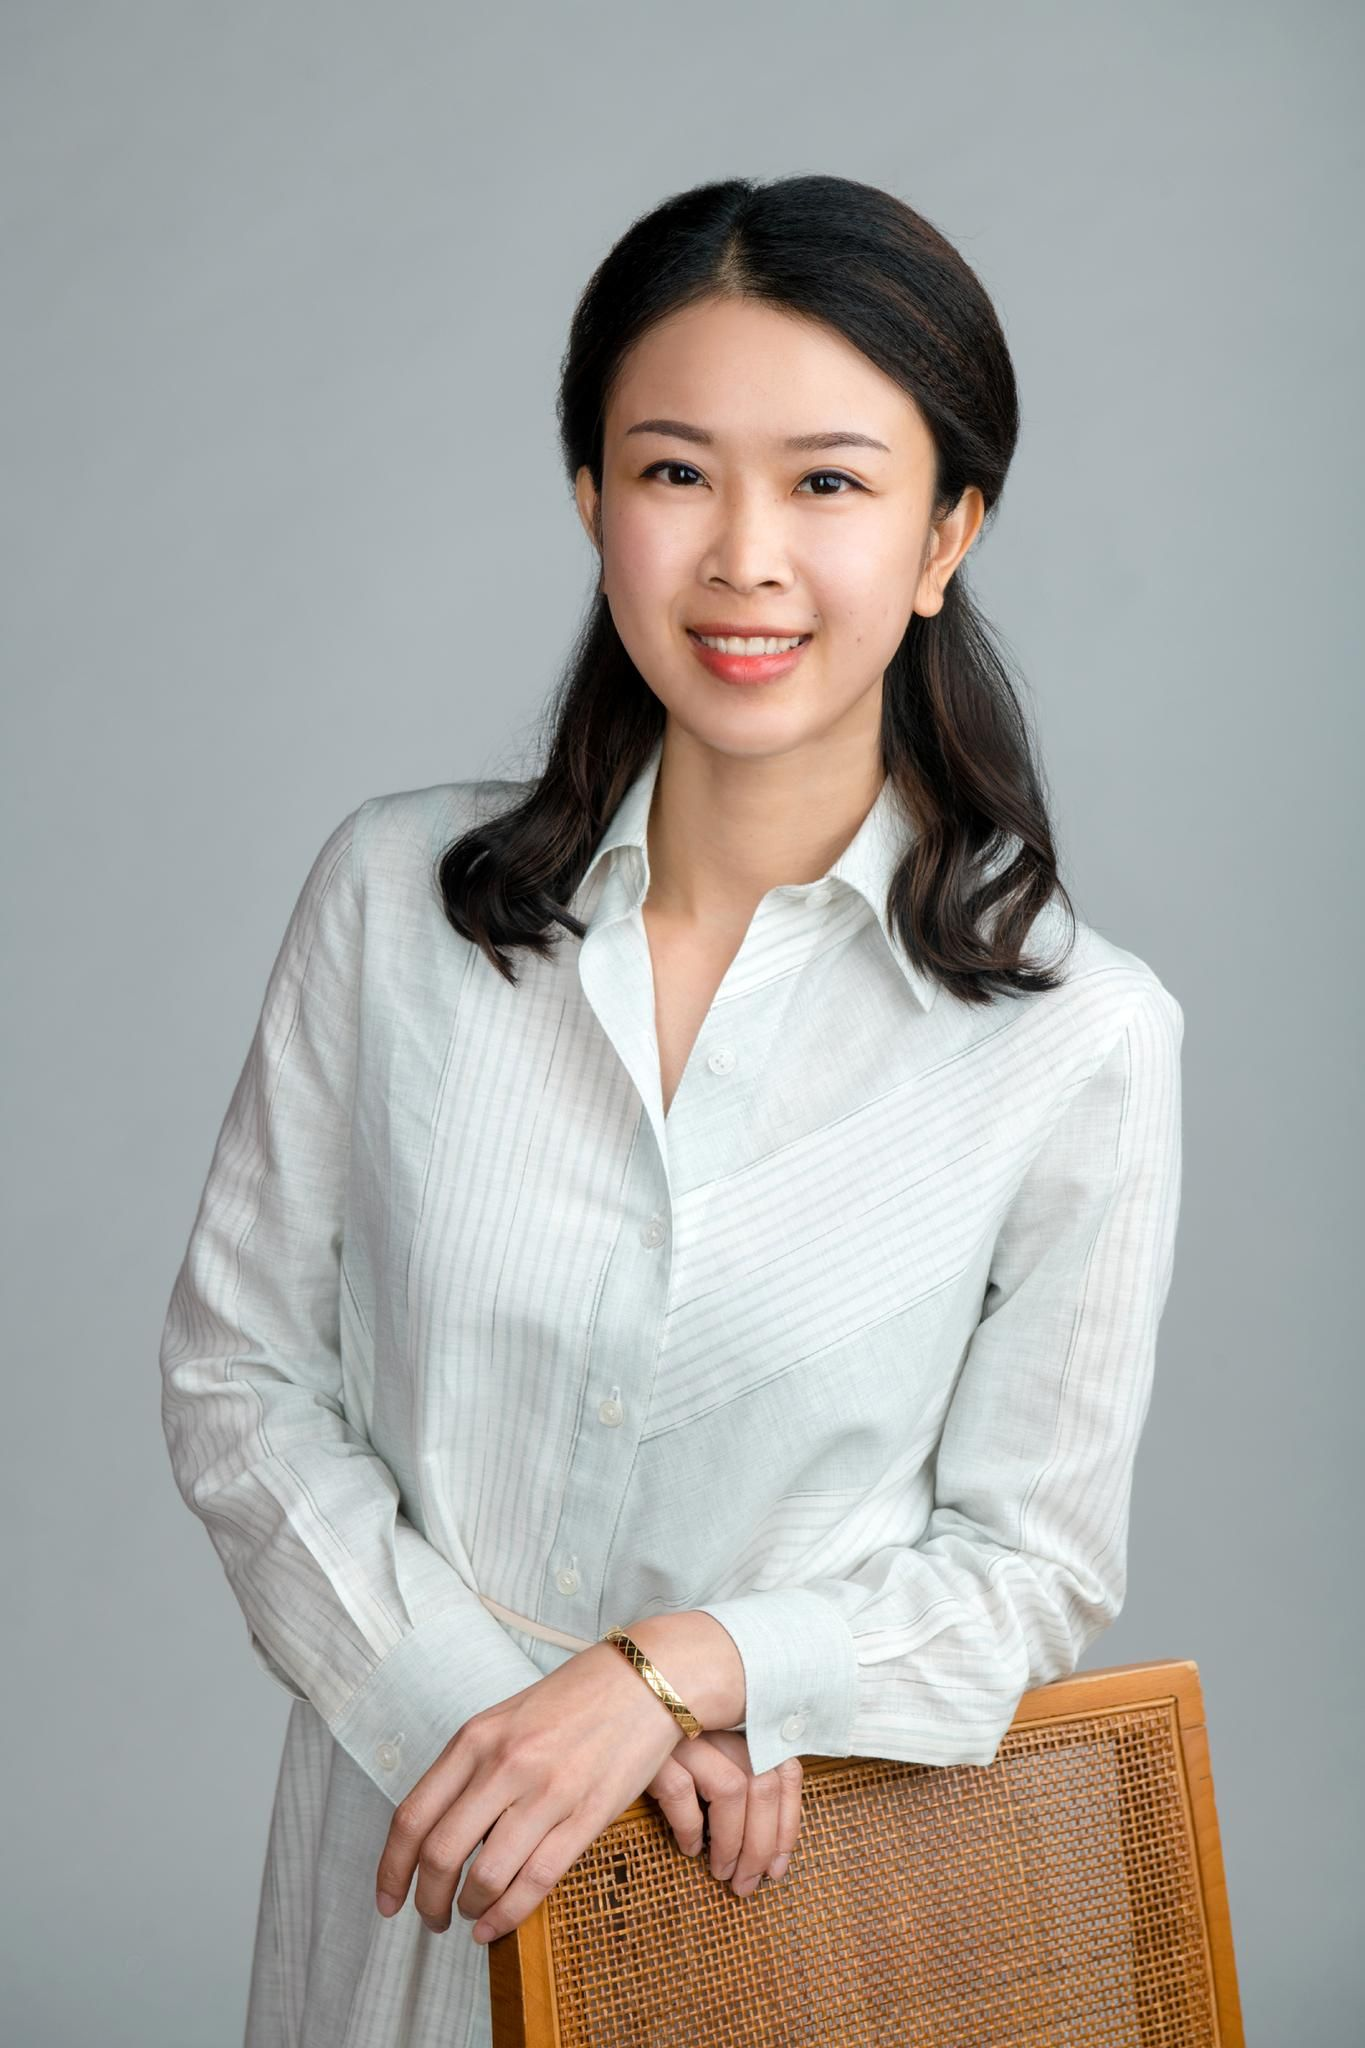 Angel Chong